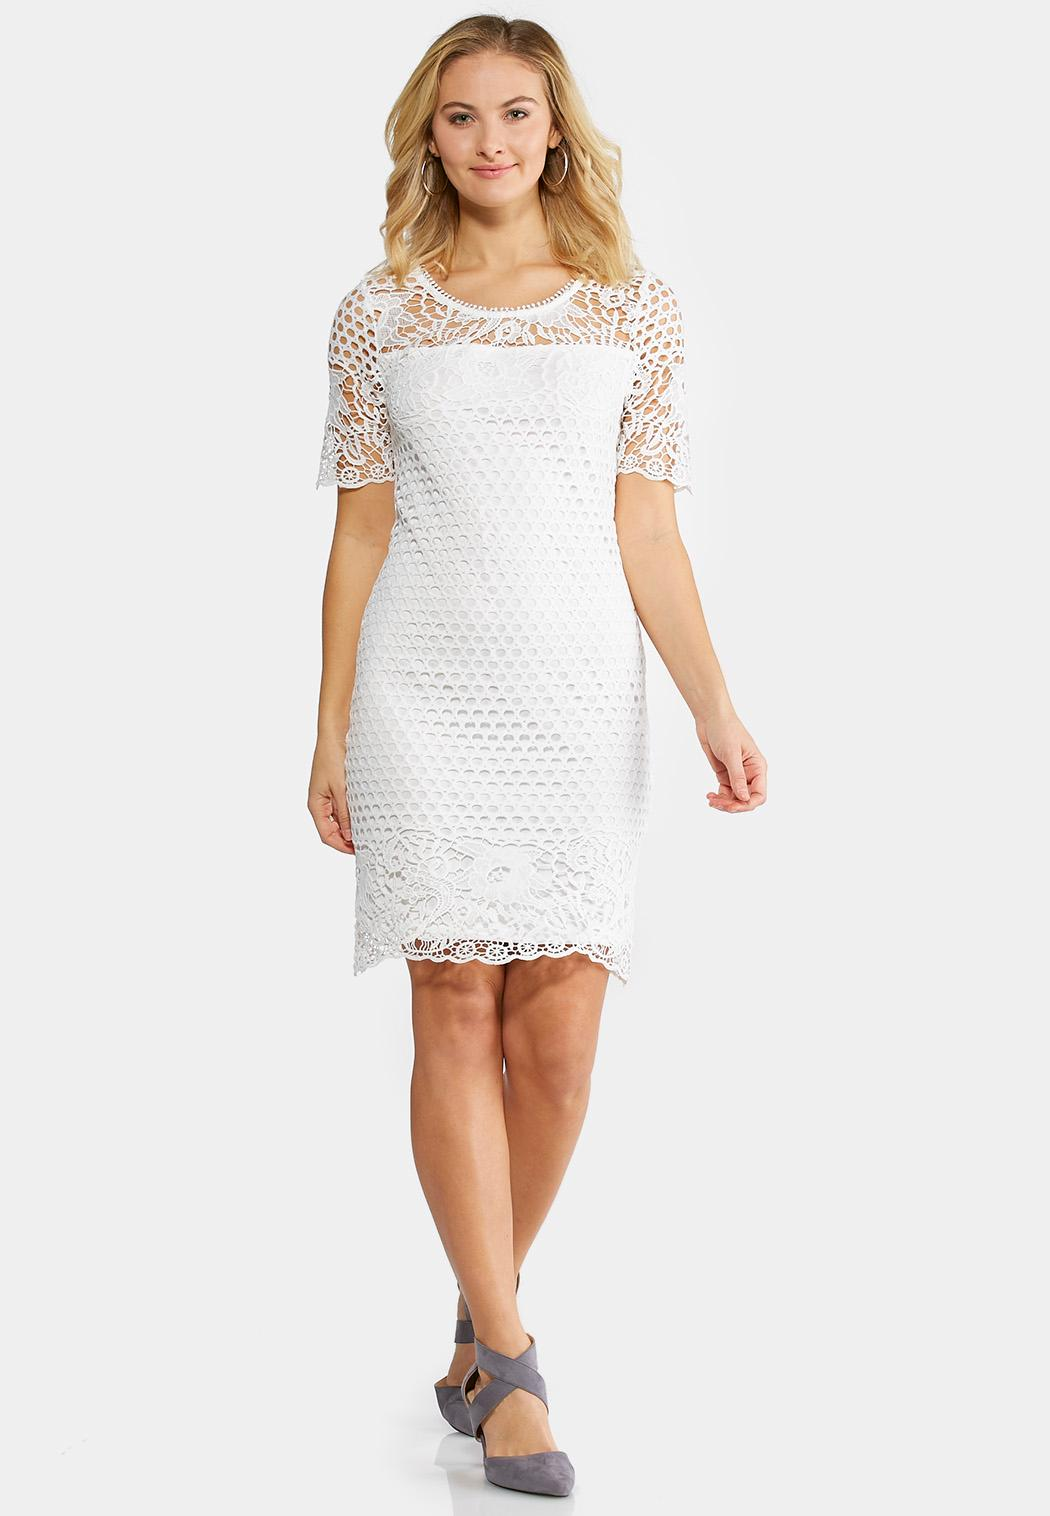 Plus Size White Crochet Sheath Dress Plus Sizes Cato Fashions